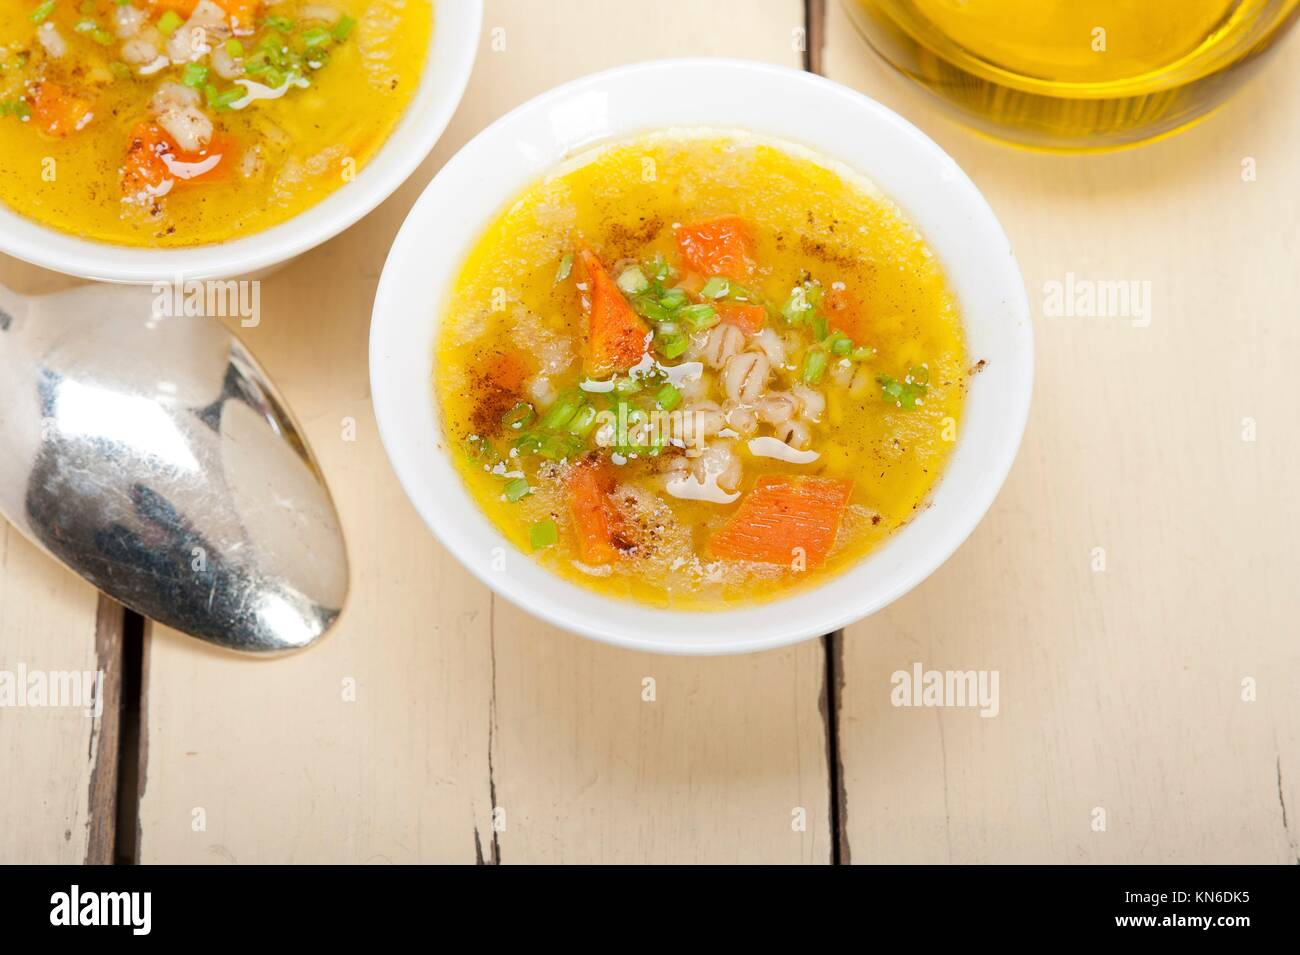 Aleppo Food Stock Photos & Aleppo Food Stock Images - Page 2